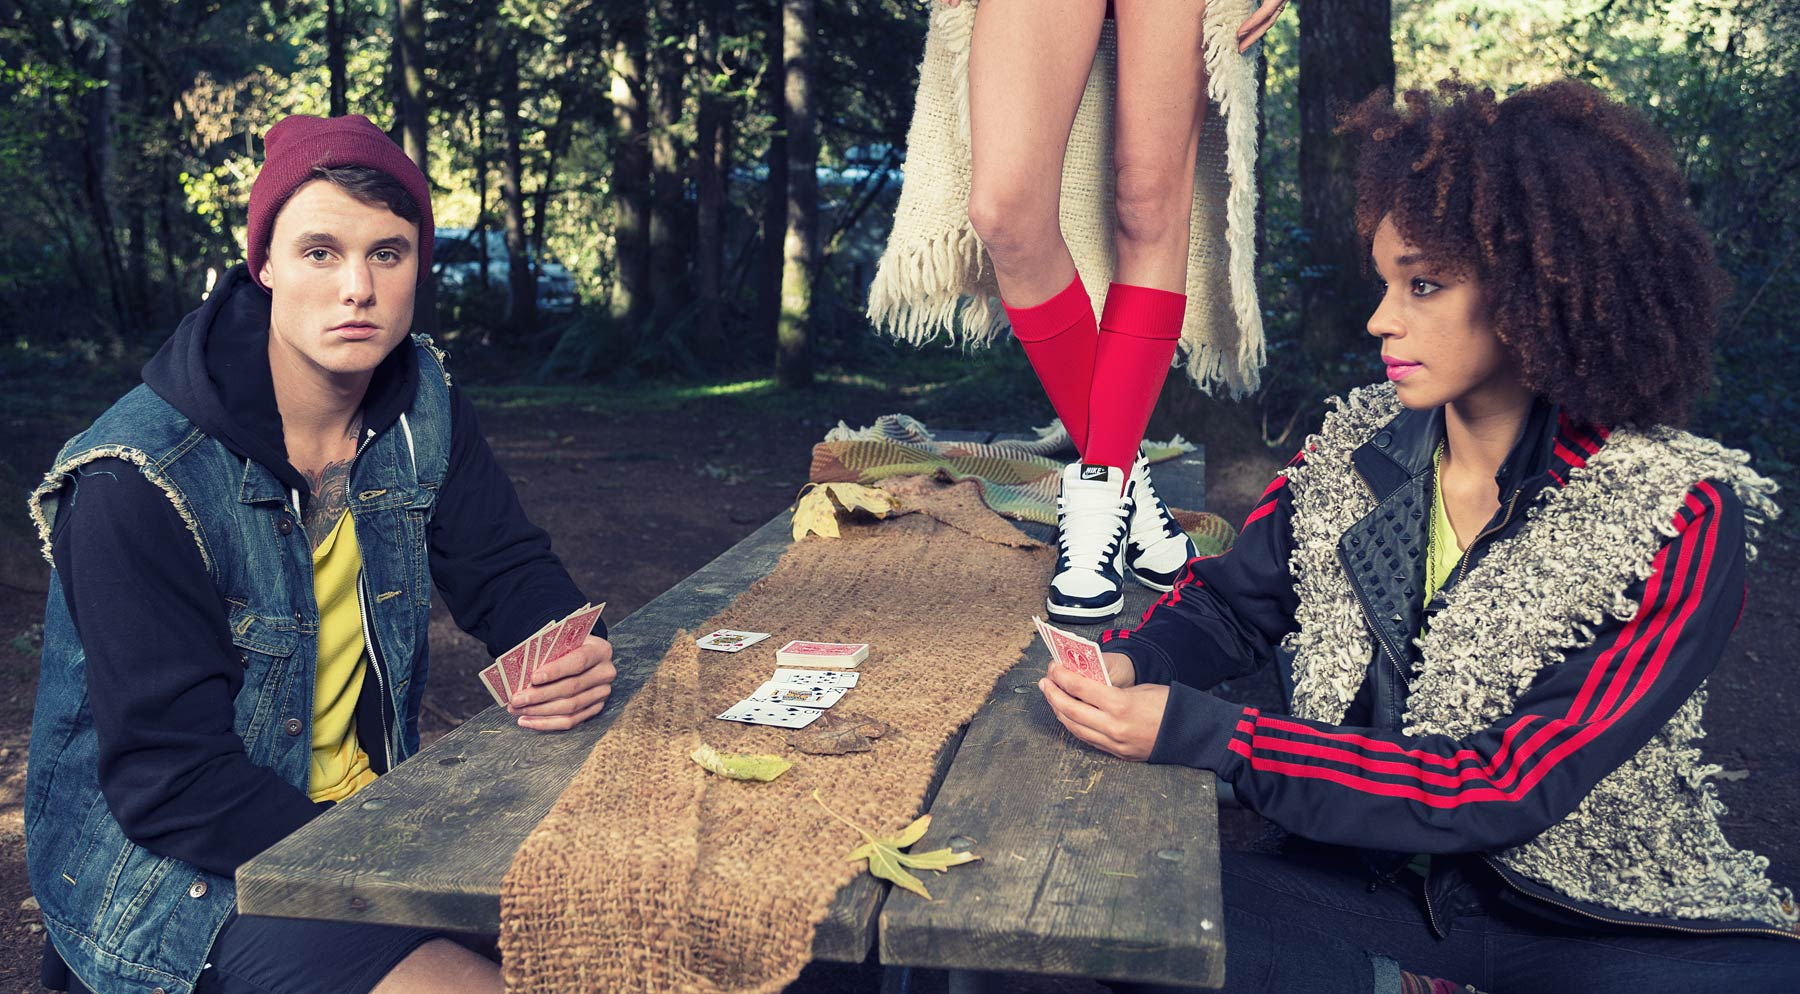 Fashion photographer Portland - couple playing cards at a camp ground with a woman standing behind them